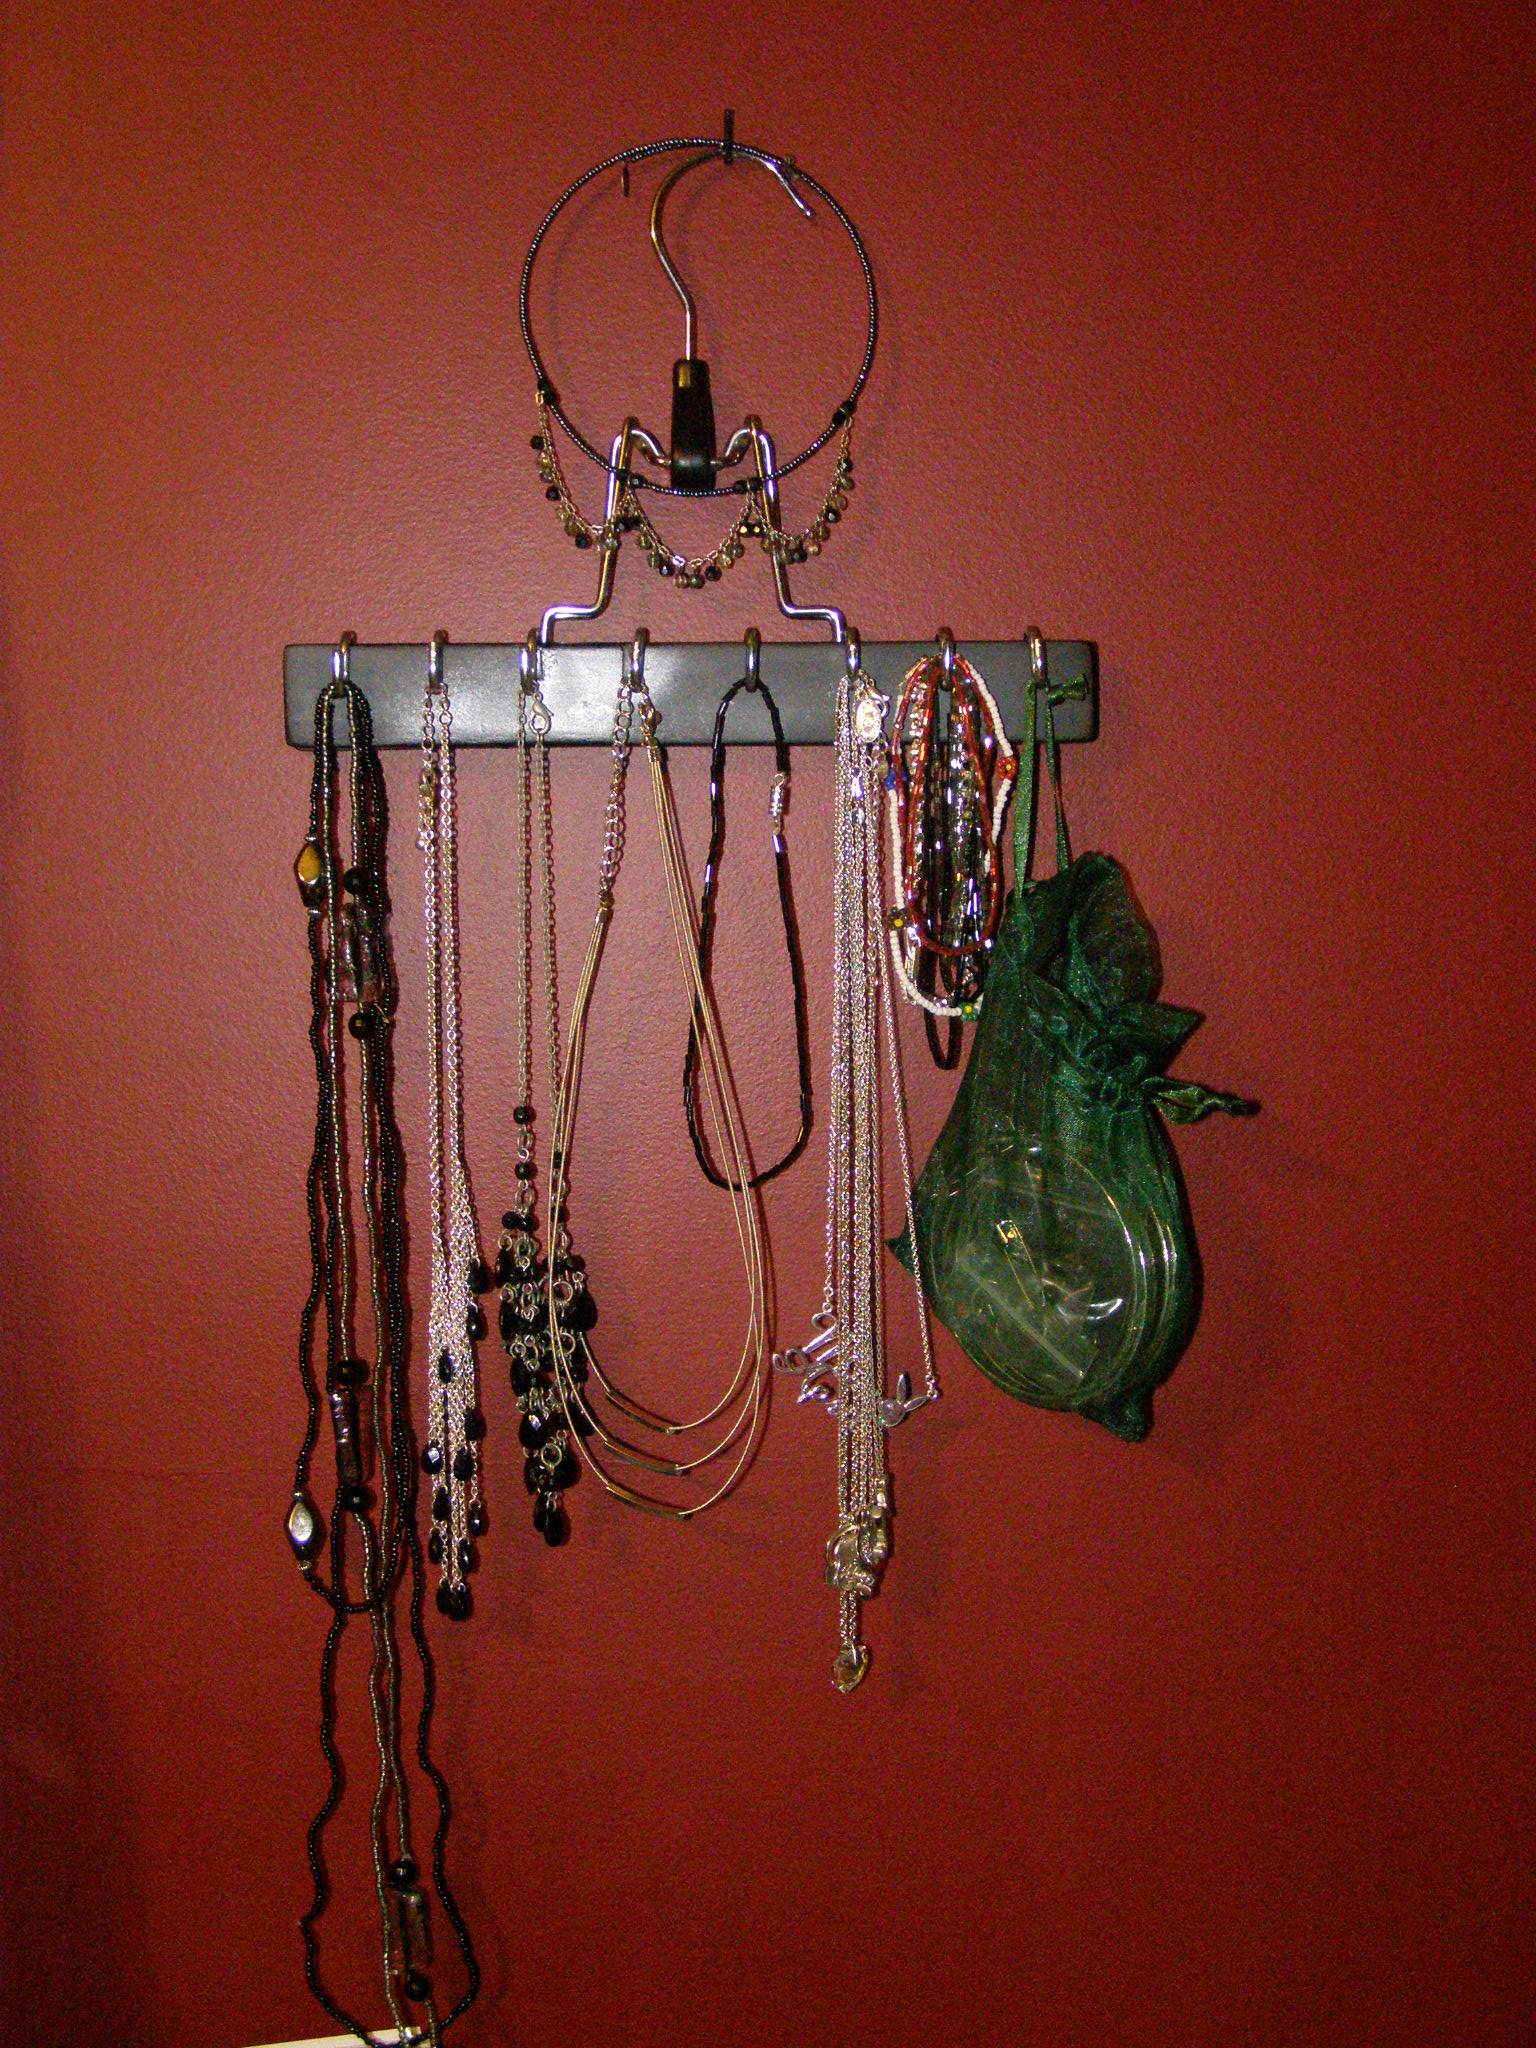 Picture of Necklace Hanger From an Old Pants Hanger